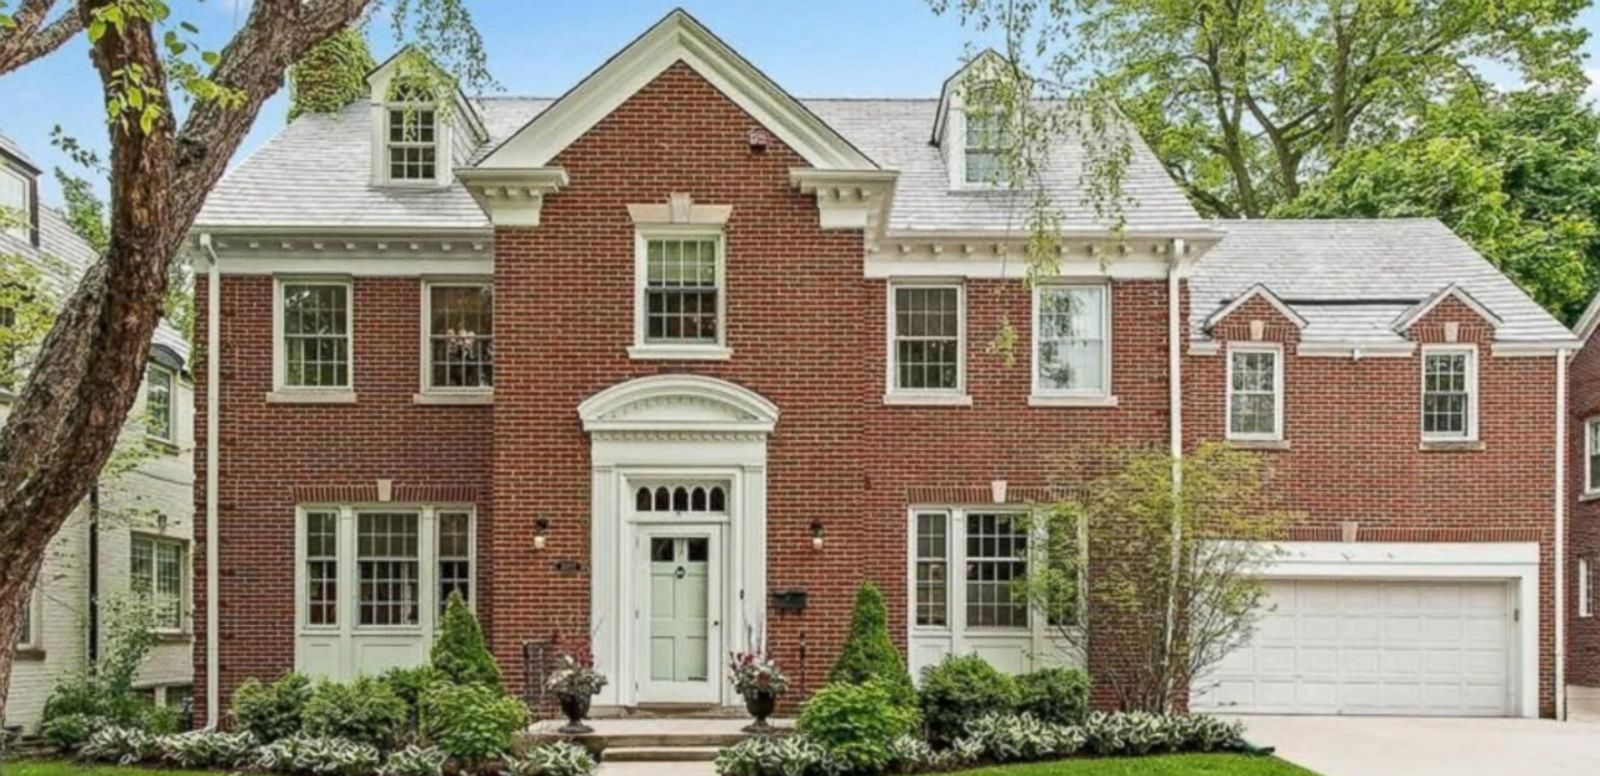 The Evanston, Illinois, home is on the market for $1.49 million.